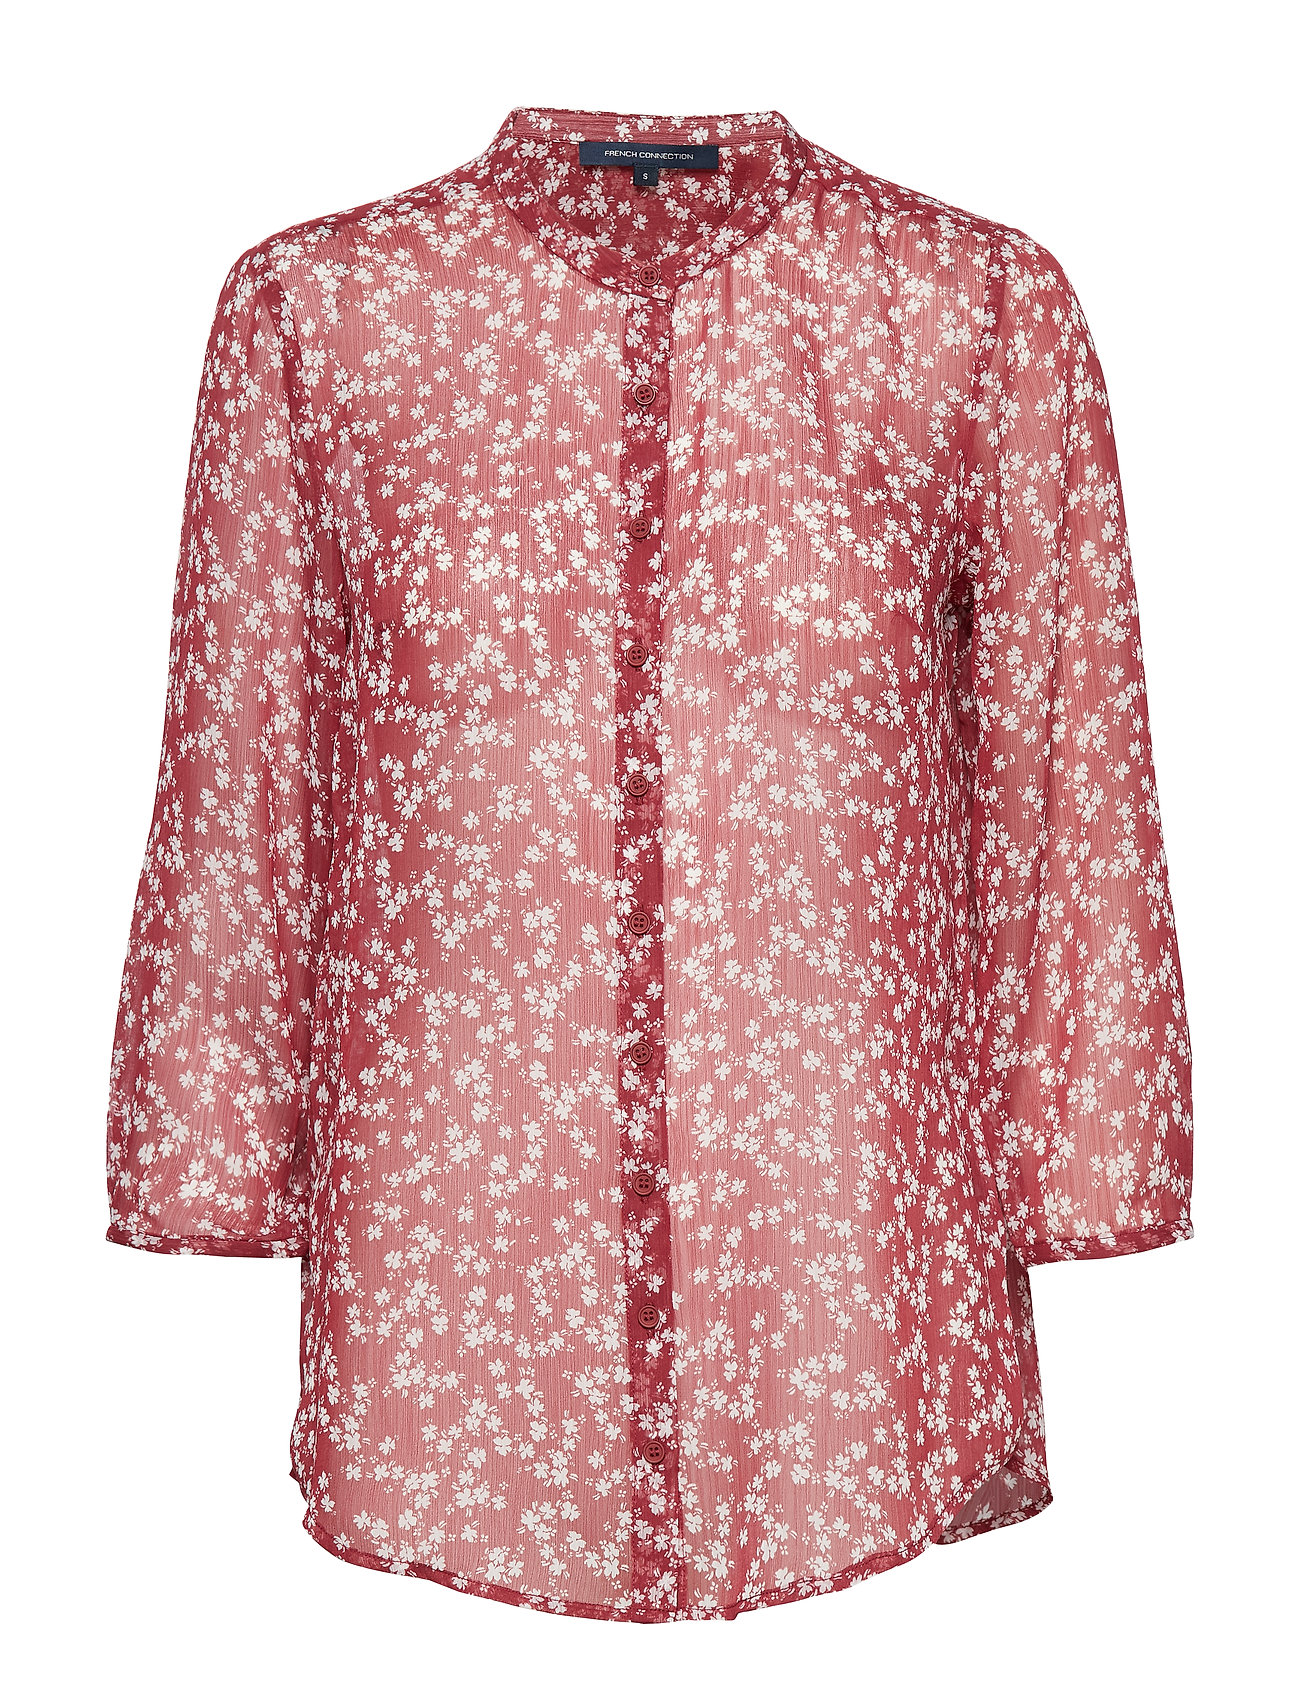 French Connection BRUNA CRINKLE COLLARLESS SHIRT - RHUBARB/CLASS CREAM